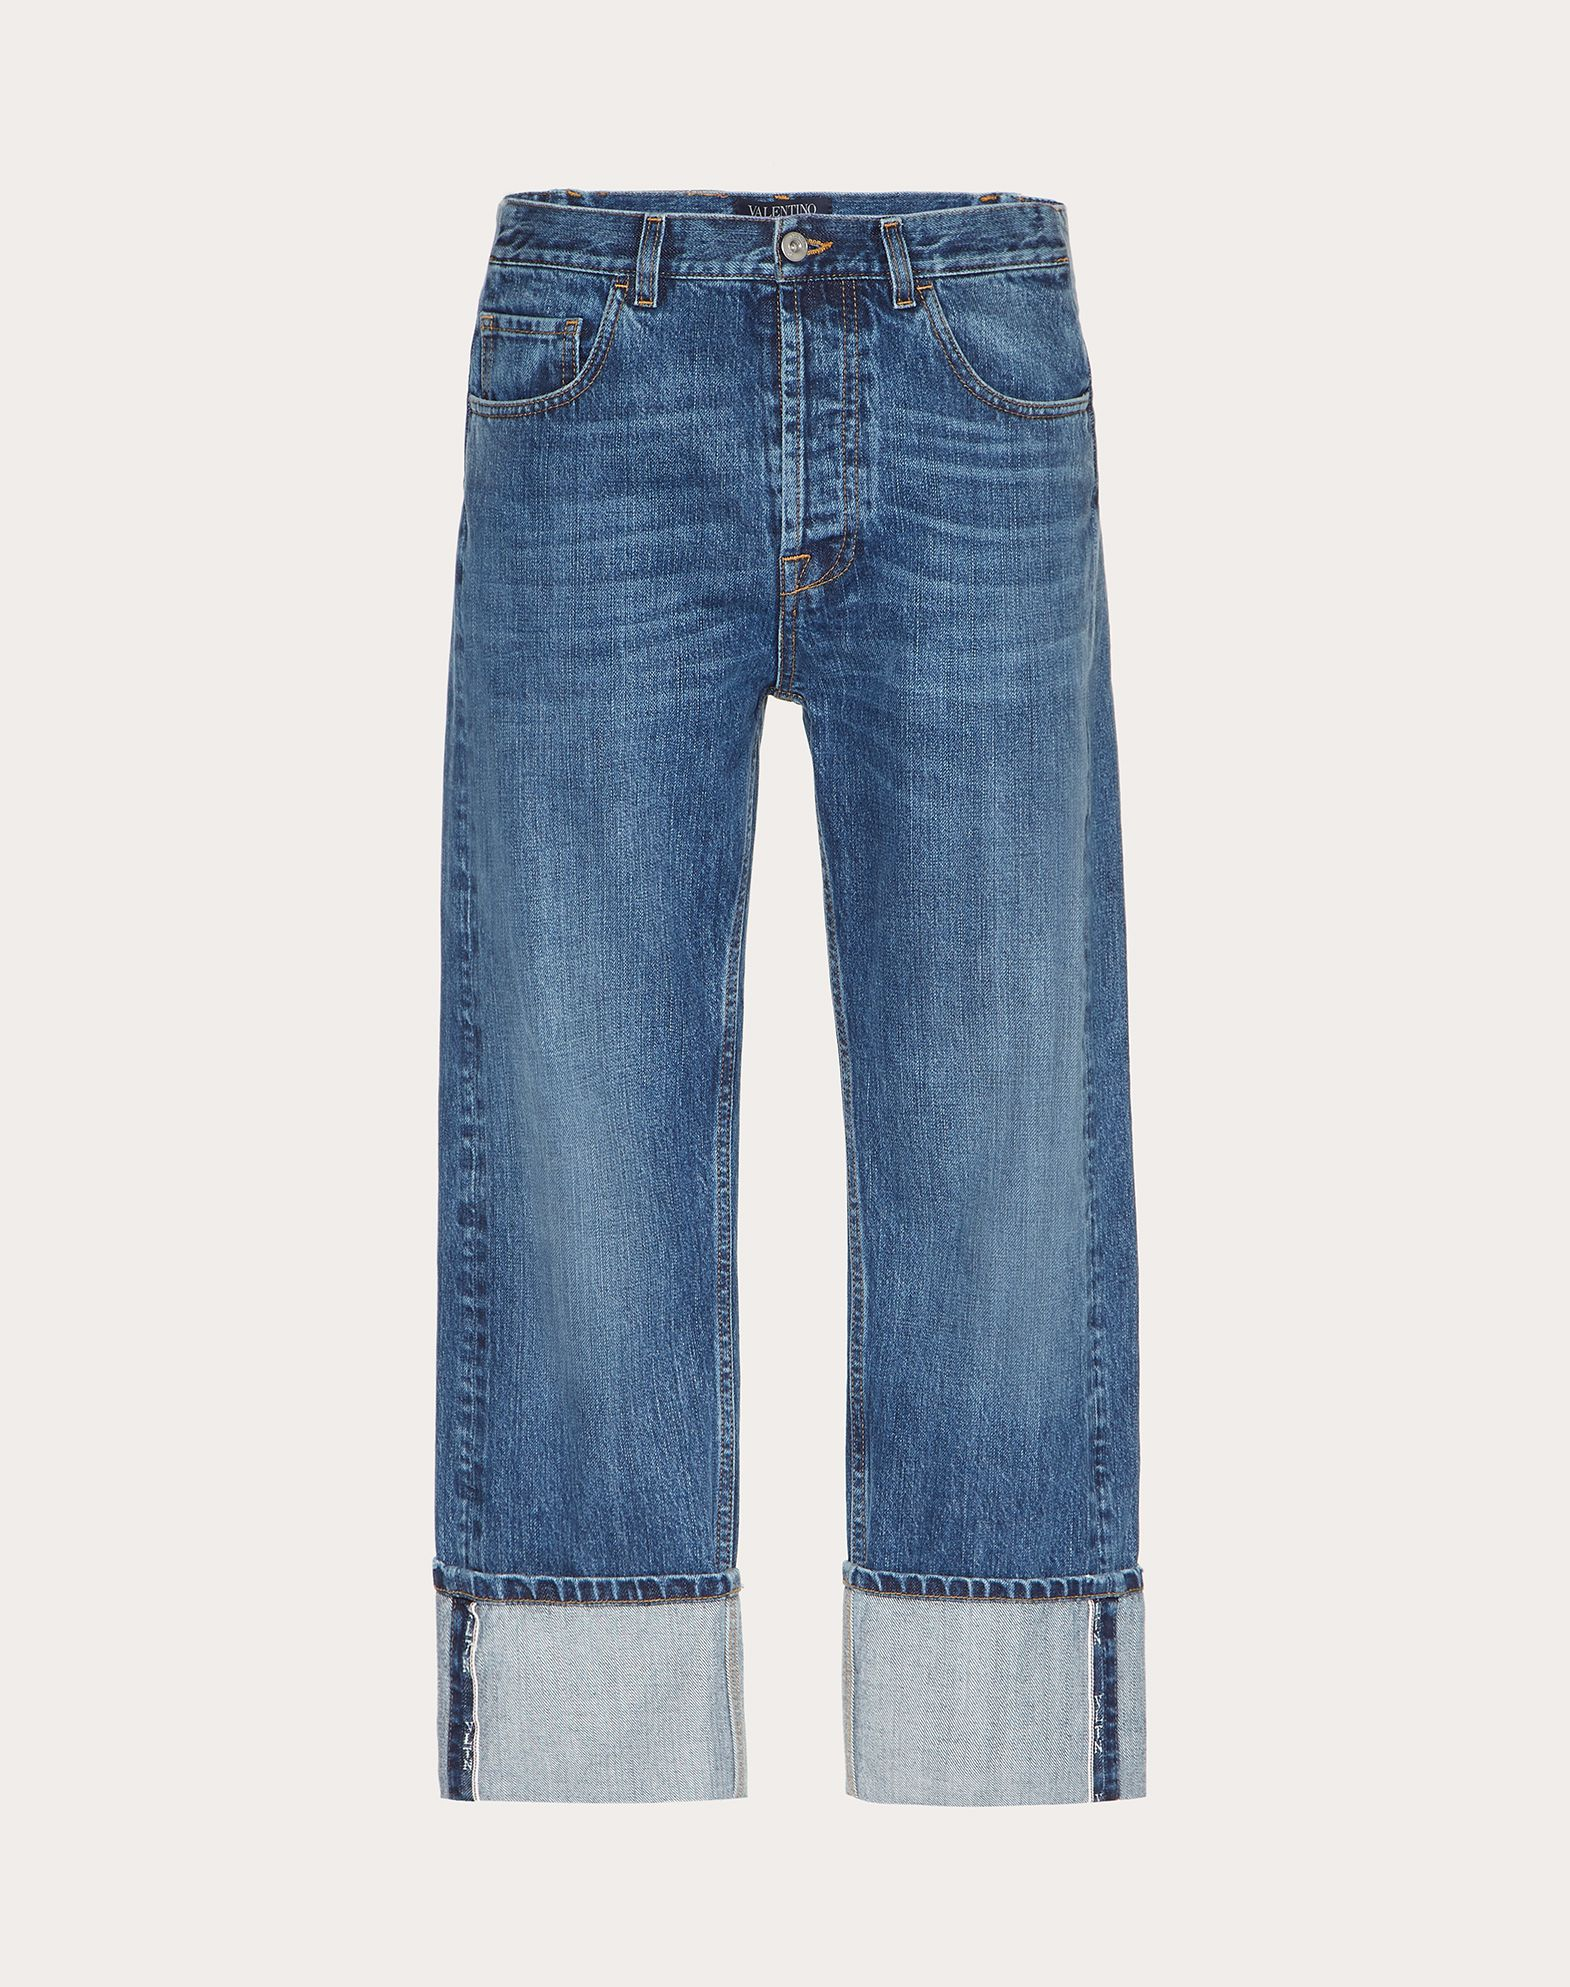 BAGGY JEANS WITH VLTN SELVEDGE